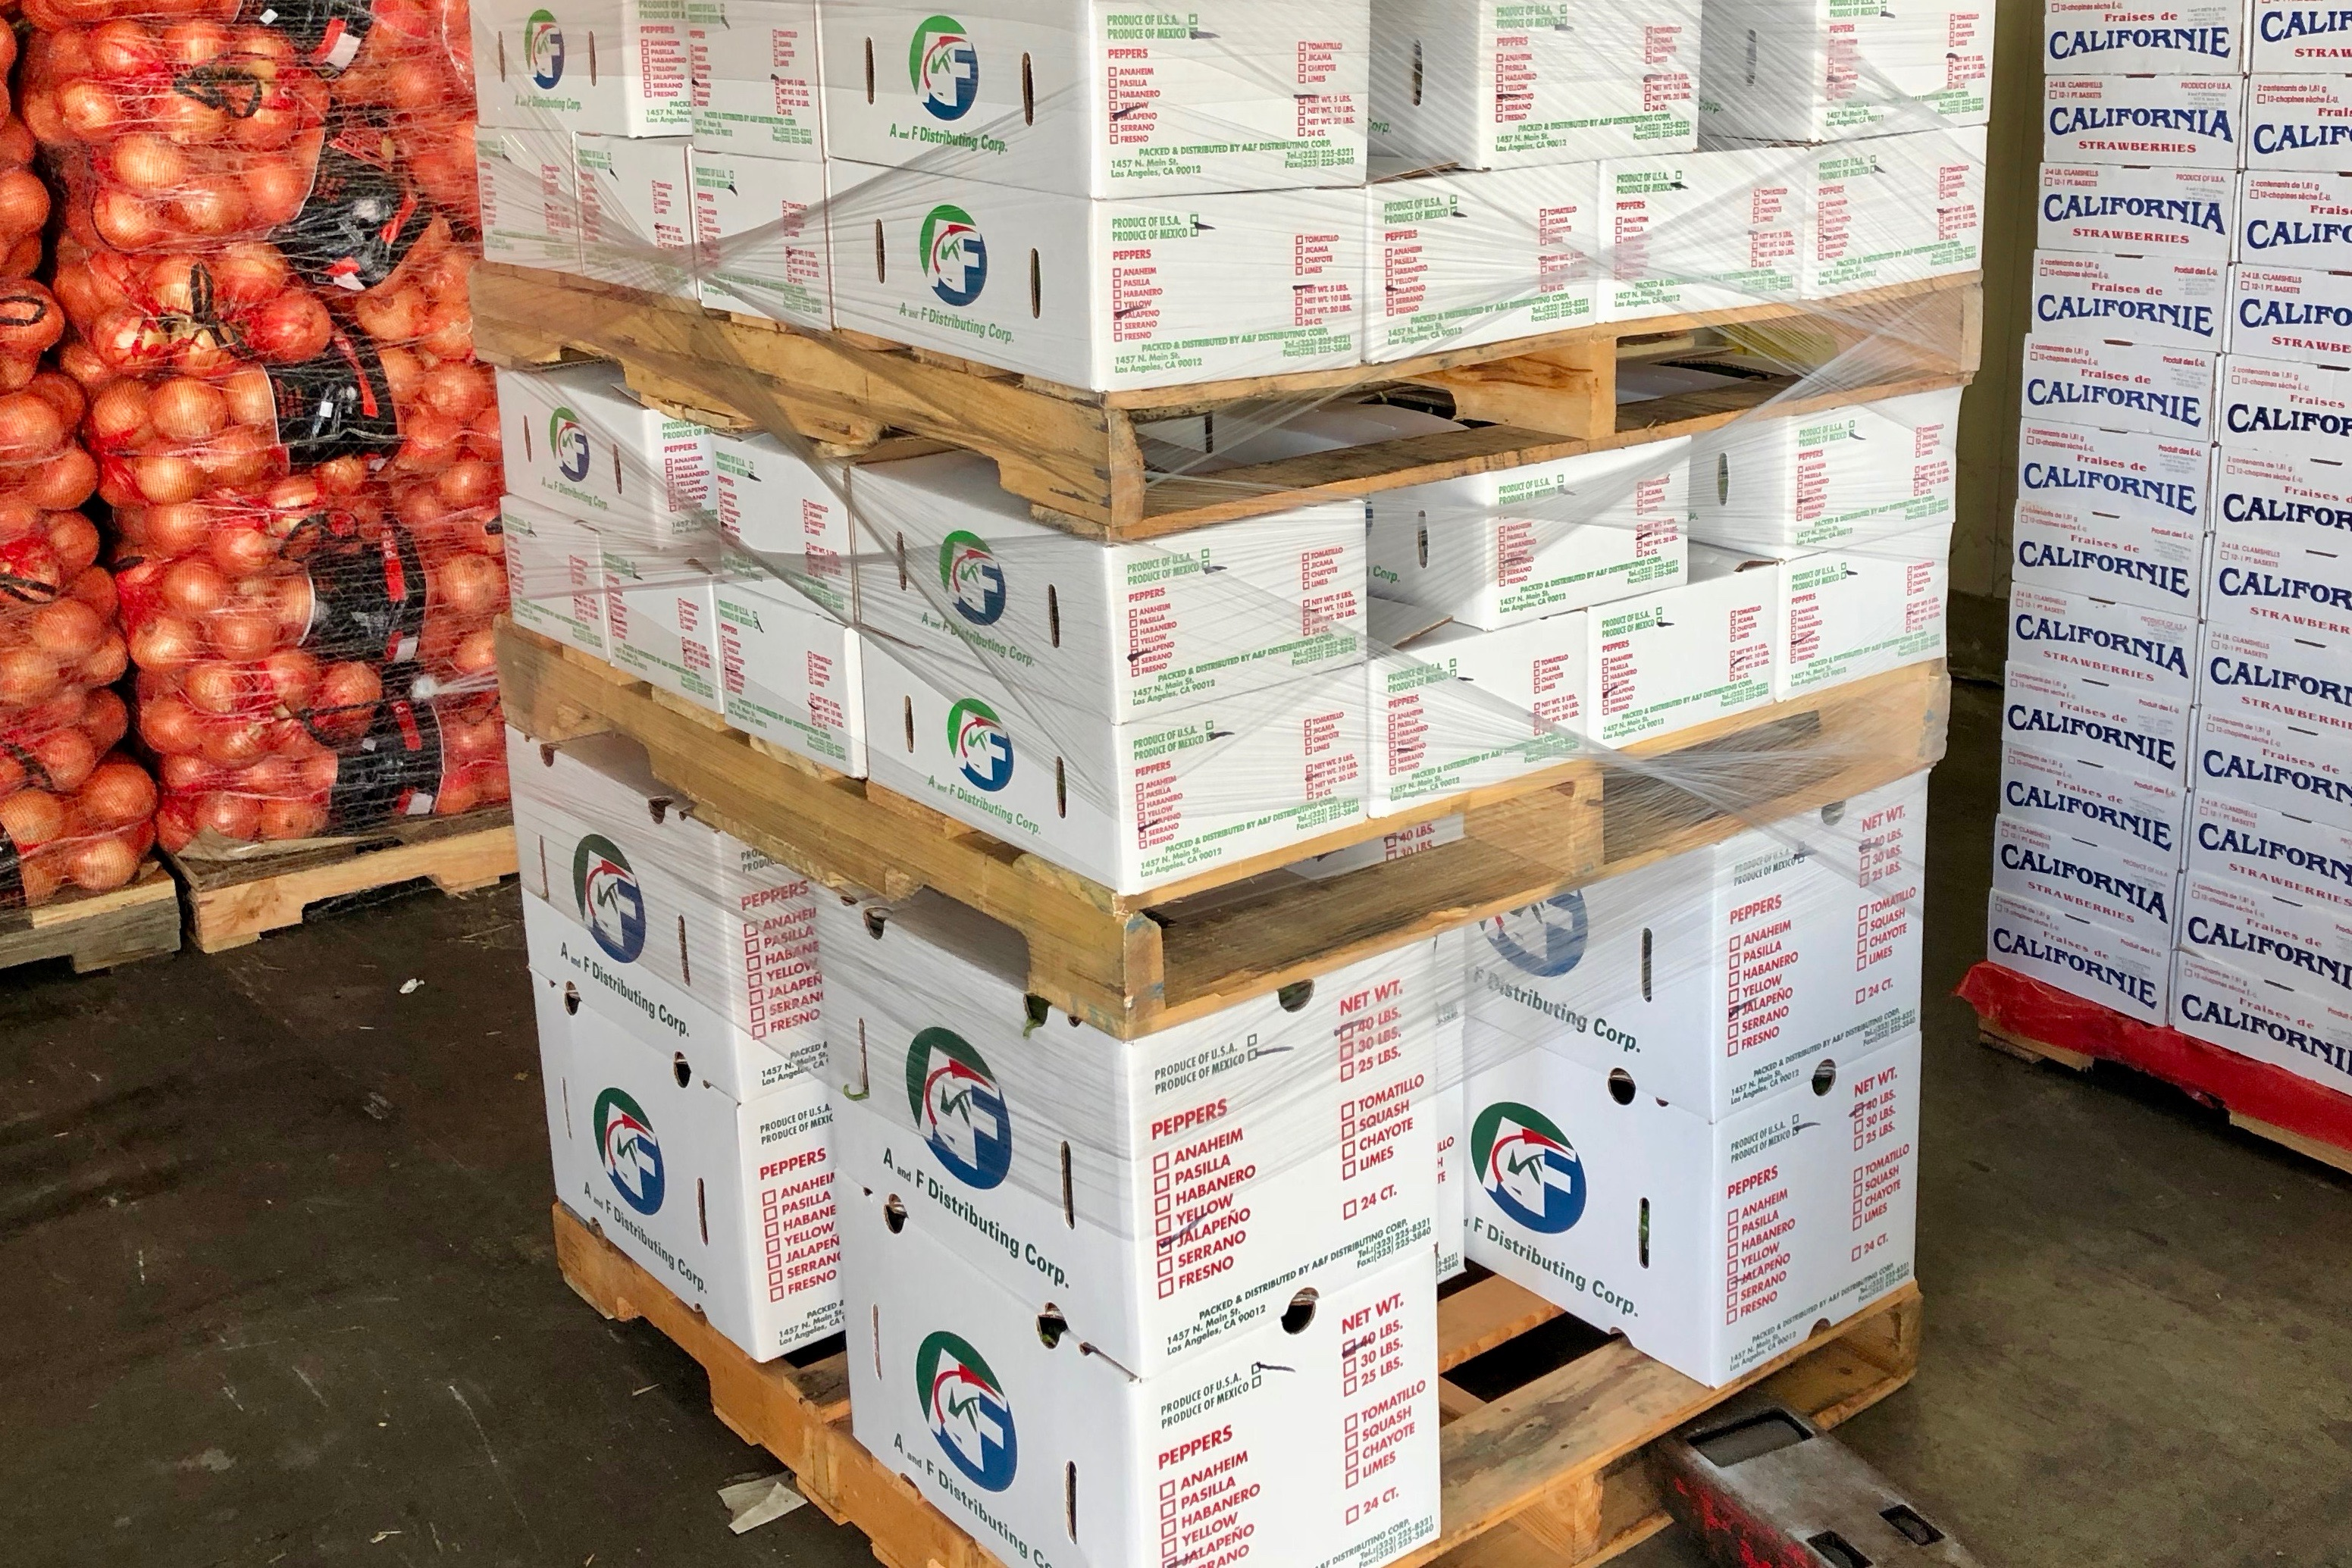 Repacked Produce from A and F Distributing Corporation.